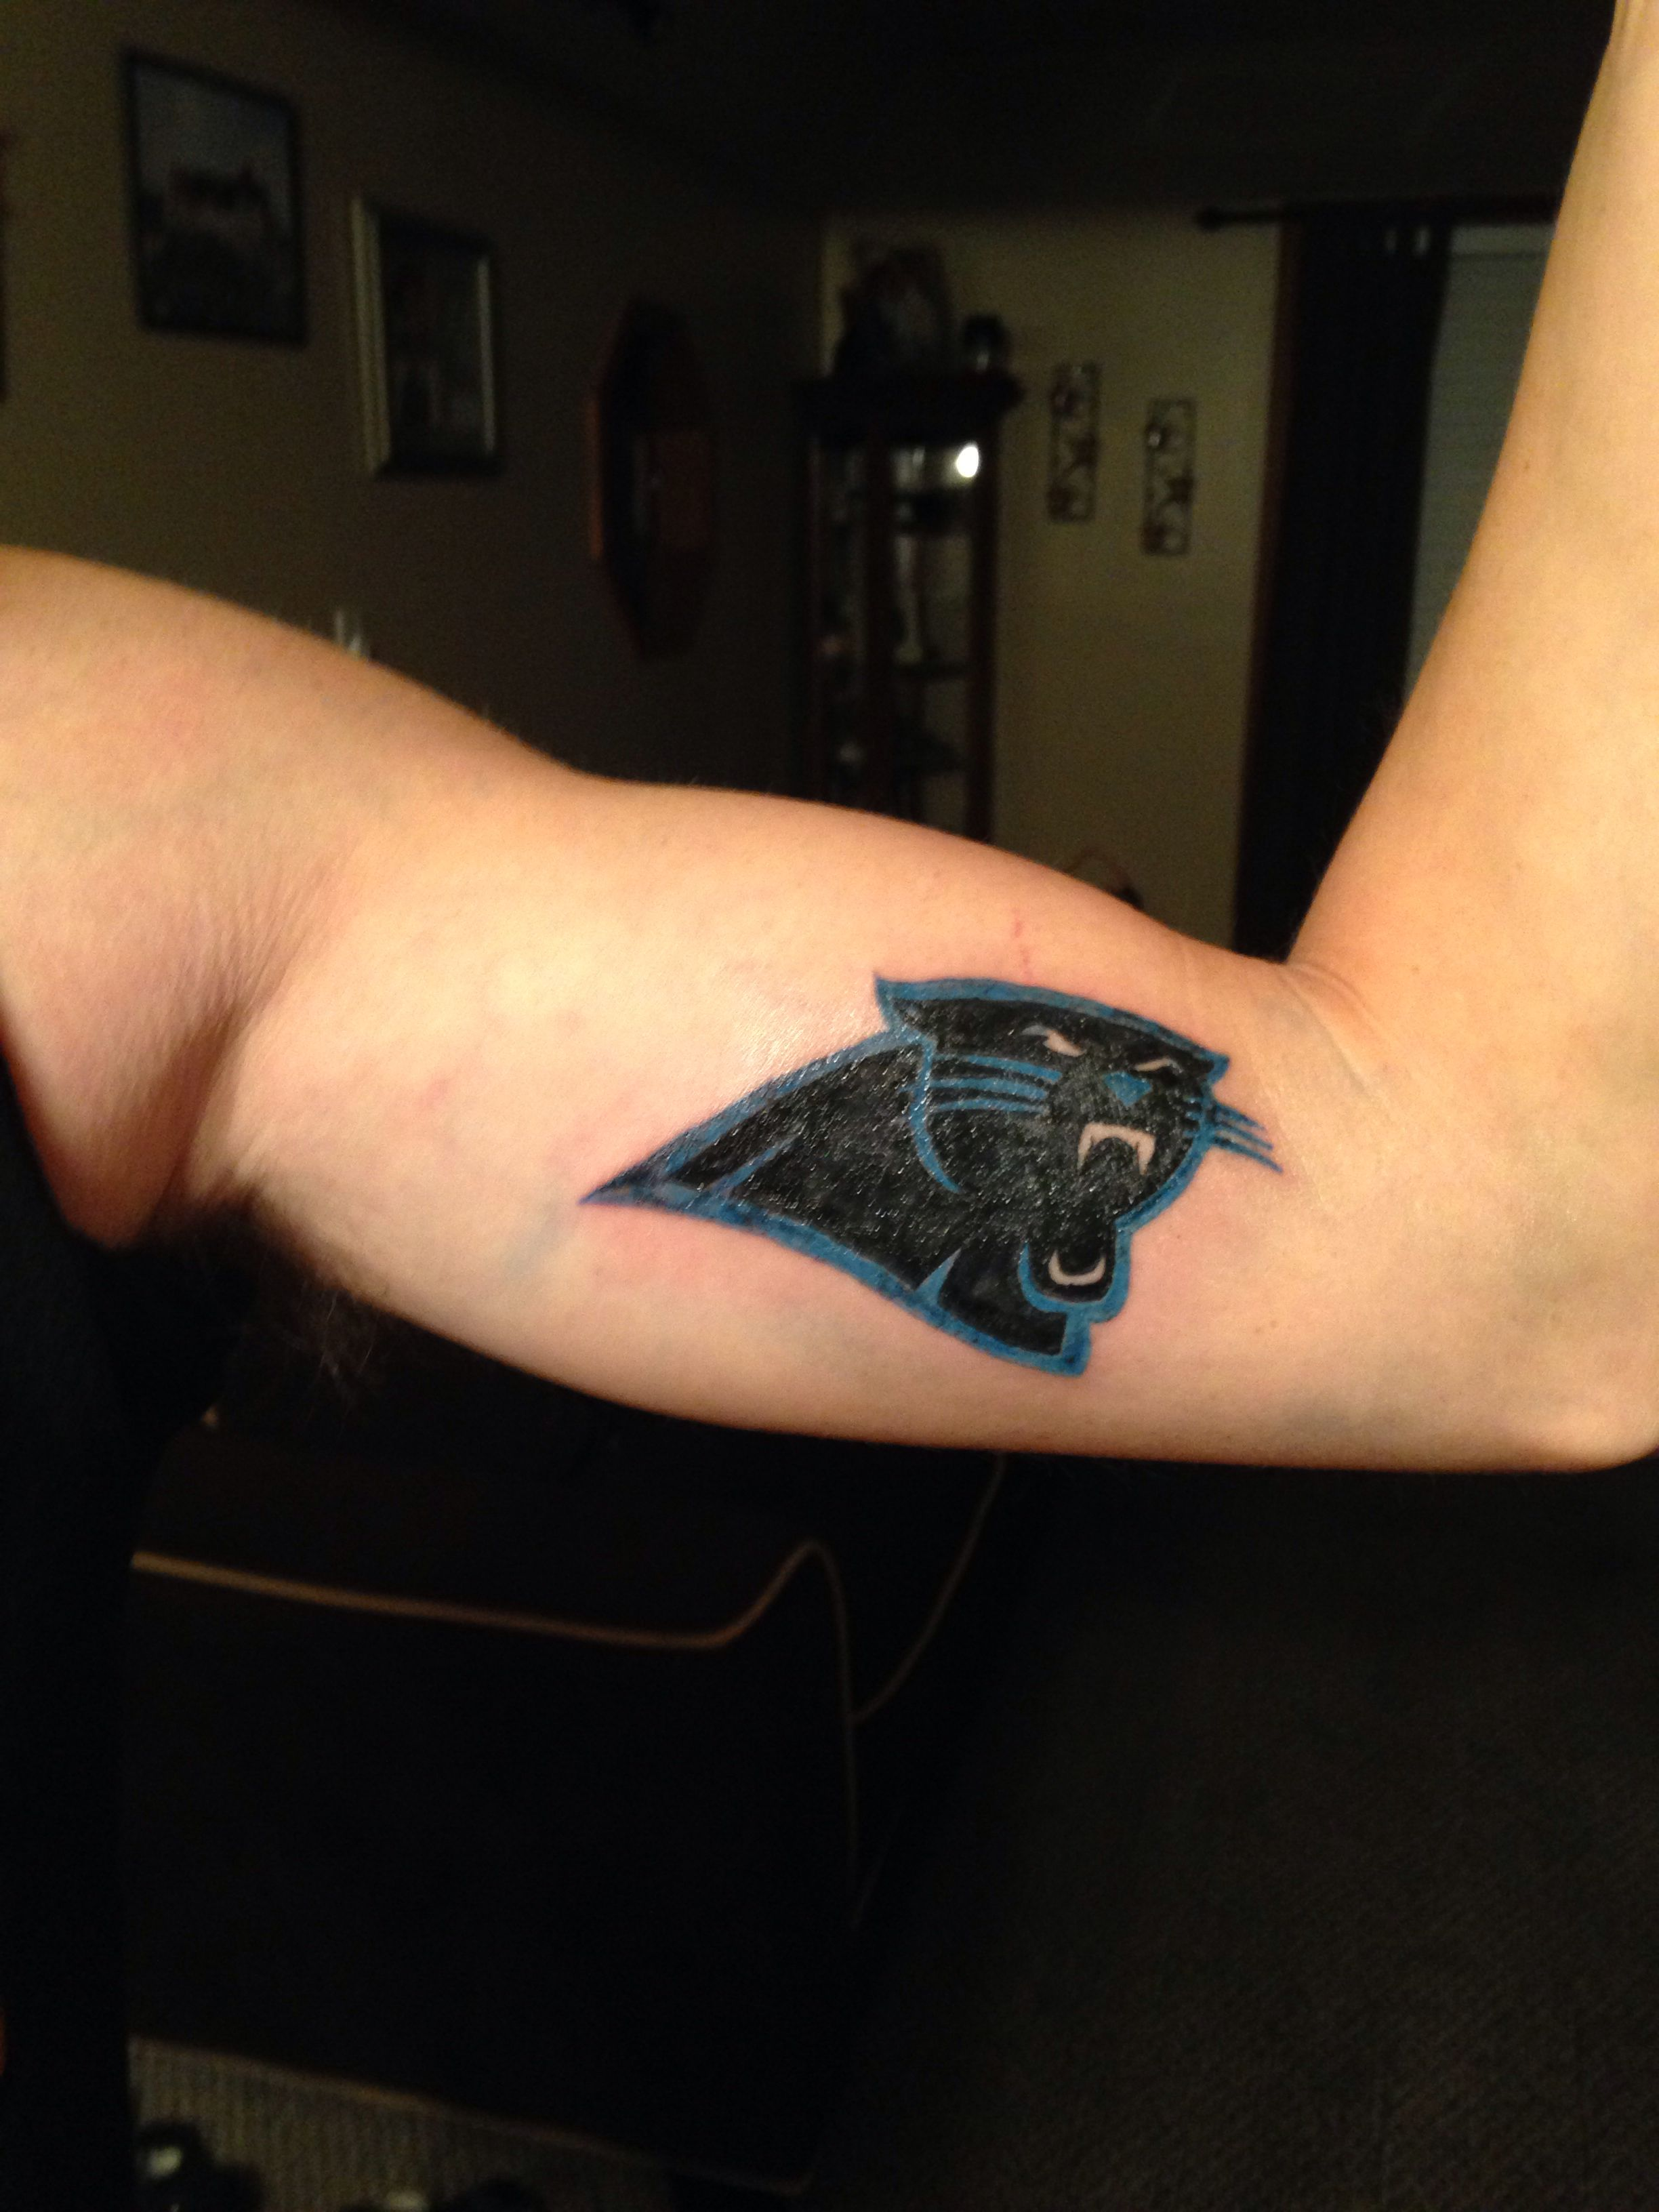 Nfl carolina panthers tattoo tattoos pinterest nfl for Carolina panthers tattoos